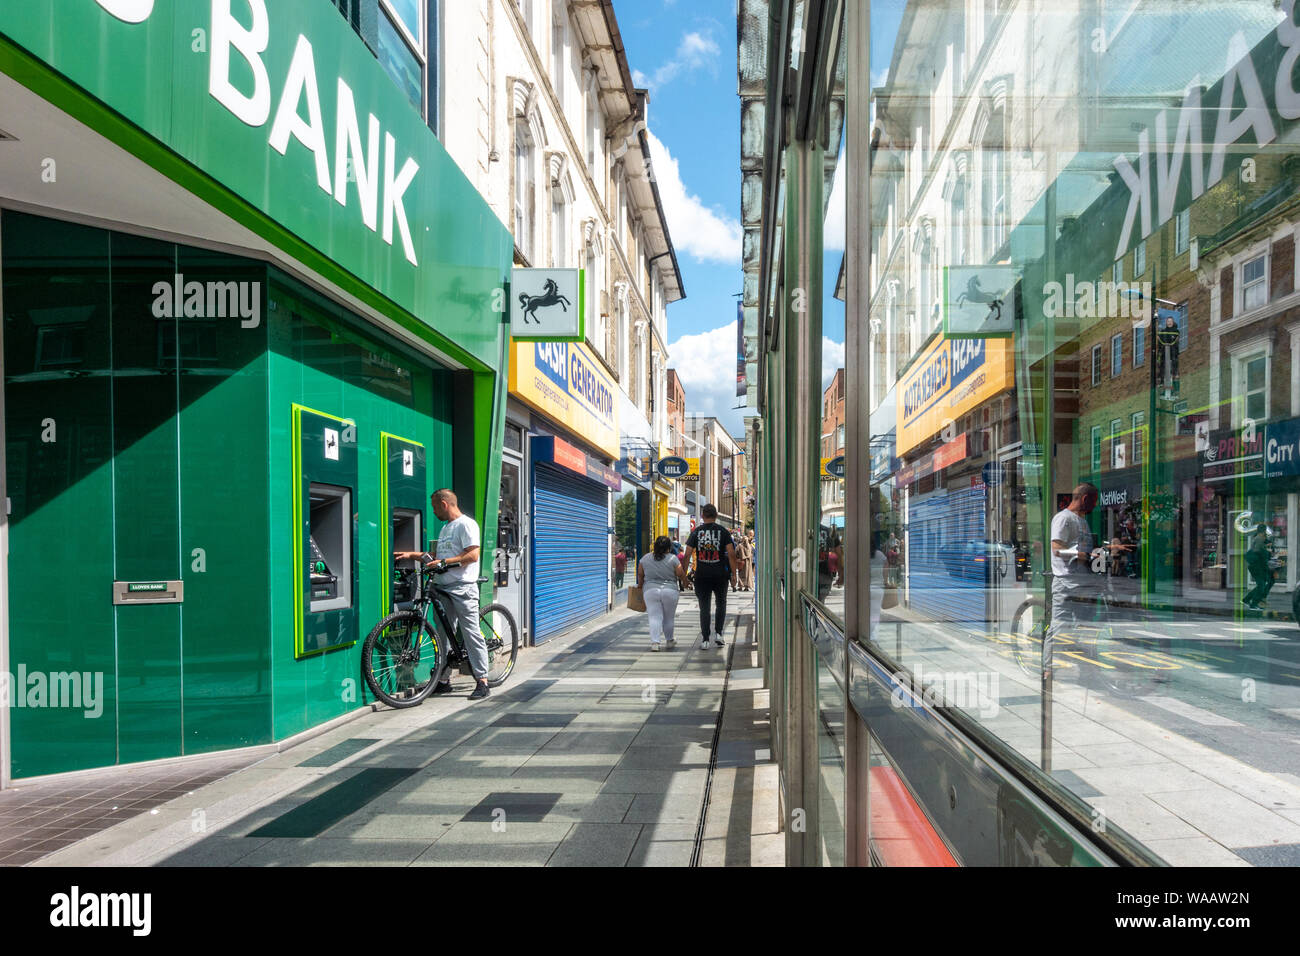 a-man-uses-an-atm-machine-at-the-slough-high-street-branch-of-lloyds-bank-the-scene-is-seen-reflected-in-a-glass-bus-stop-WAAW2N.jpg